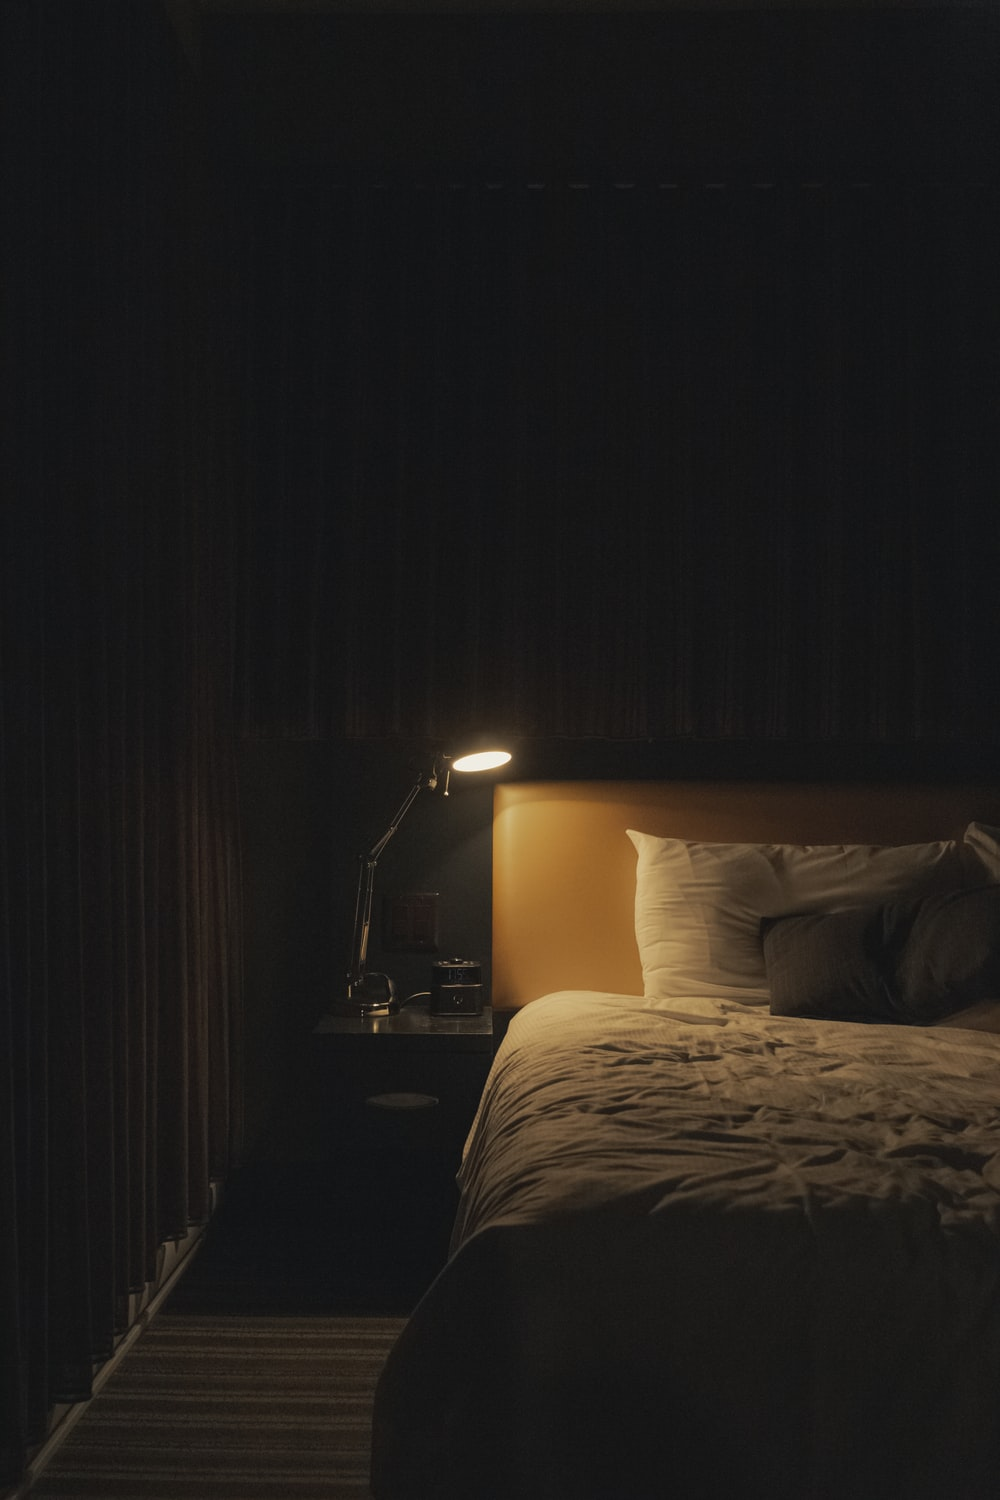 turned on study lamp beside bed